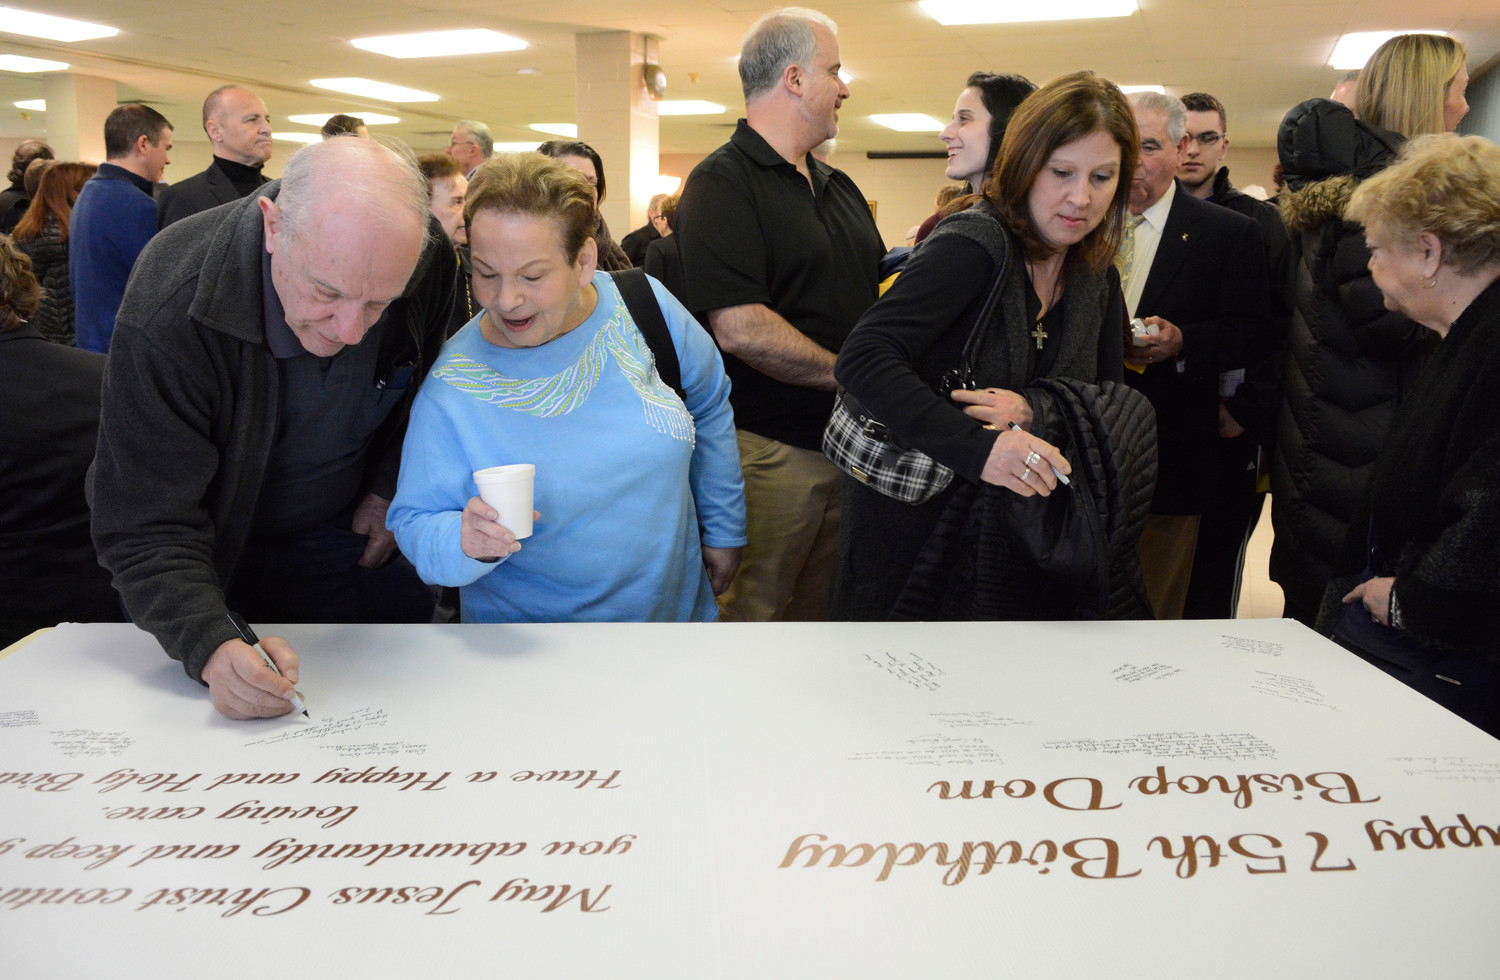 Well-wishers sign an oversized birthday card for the bishop.